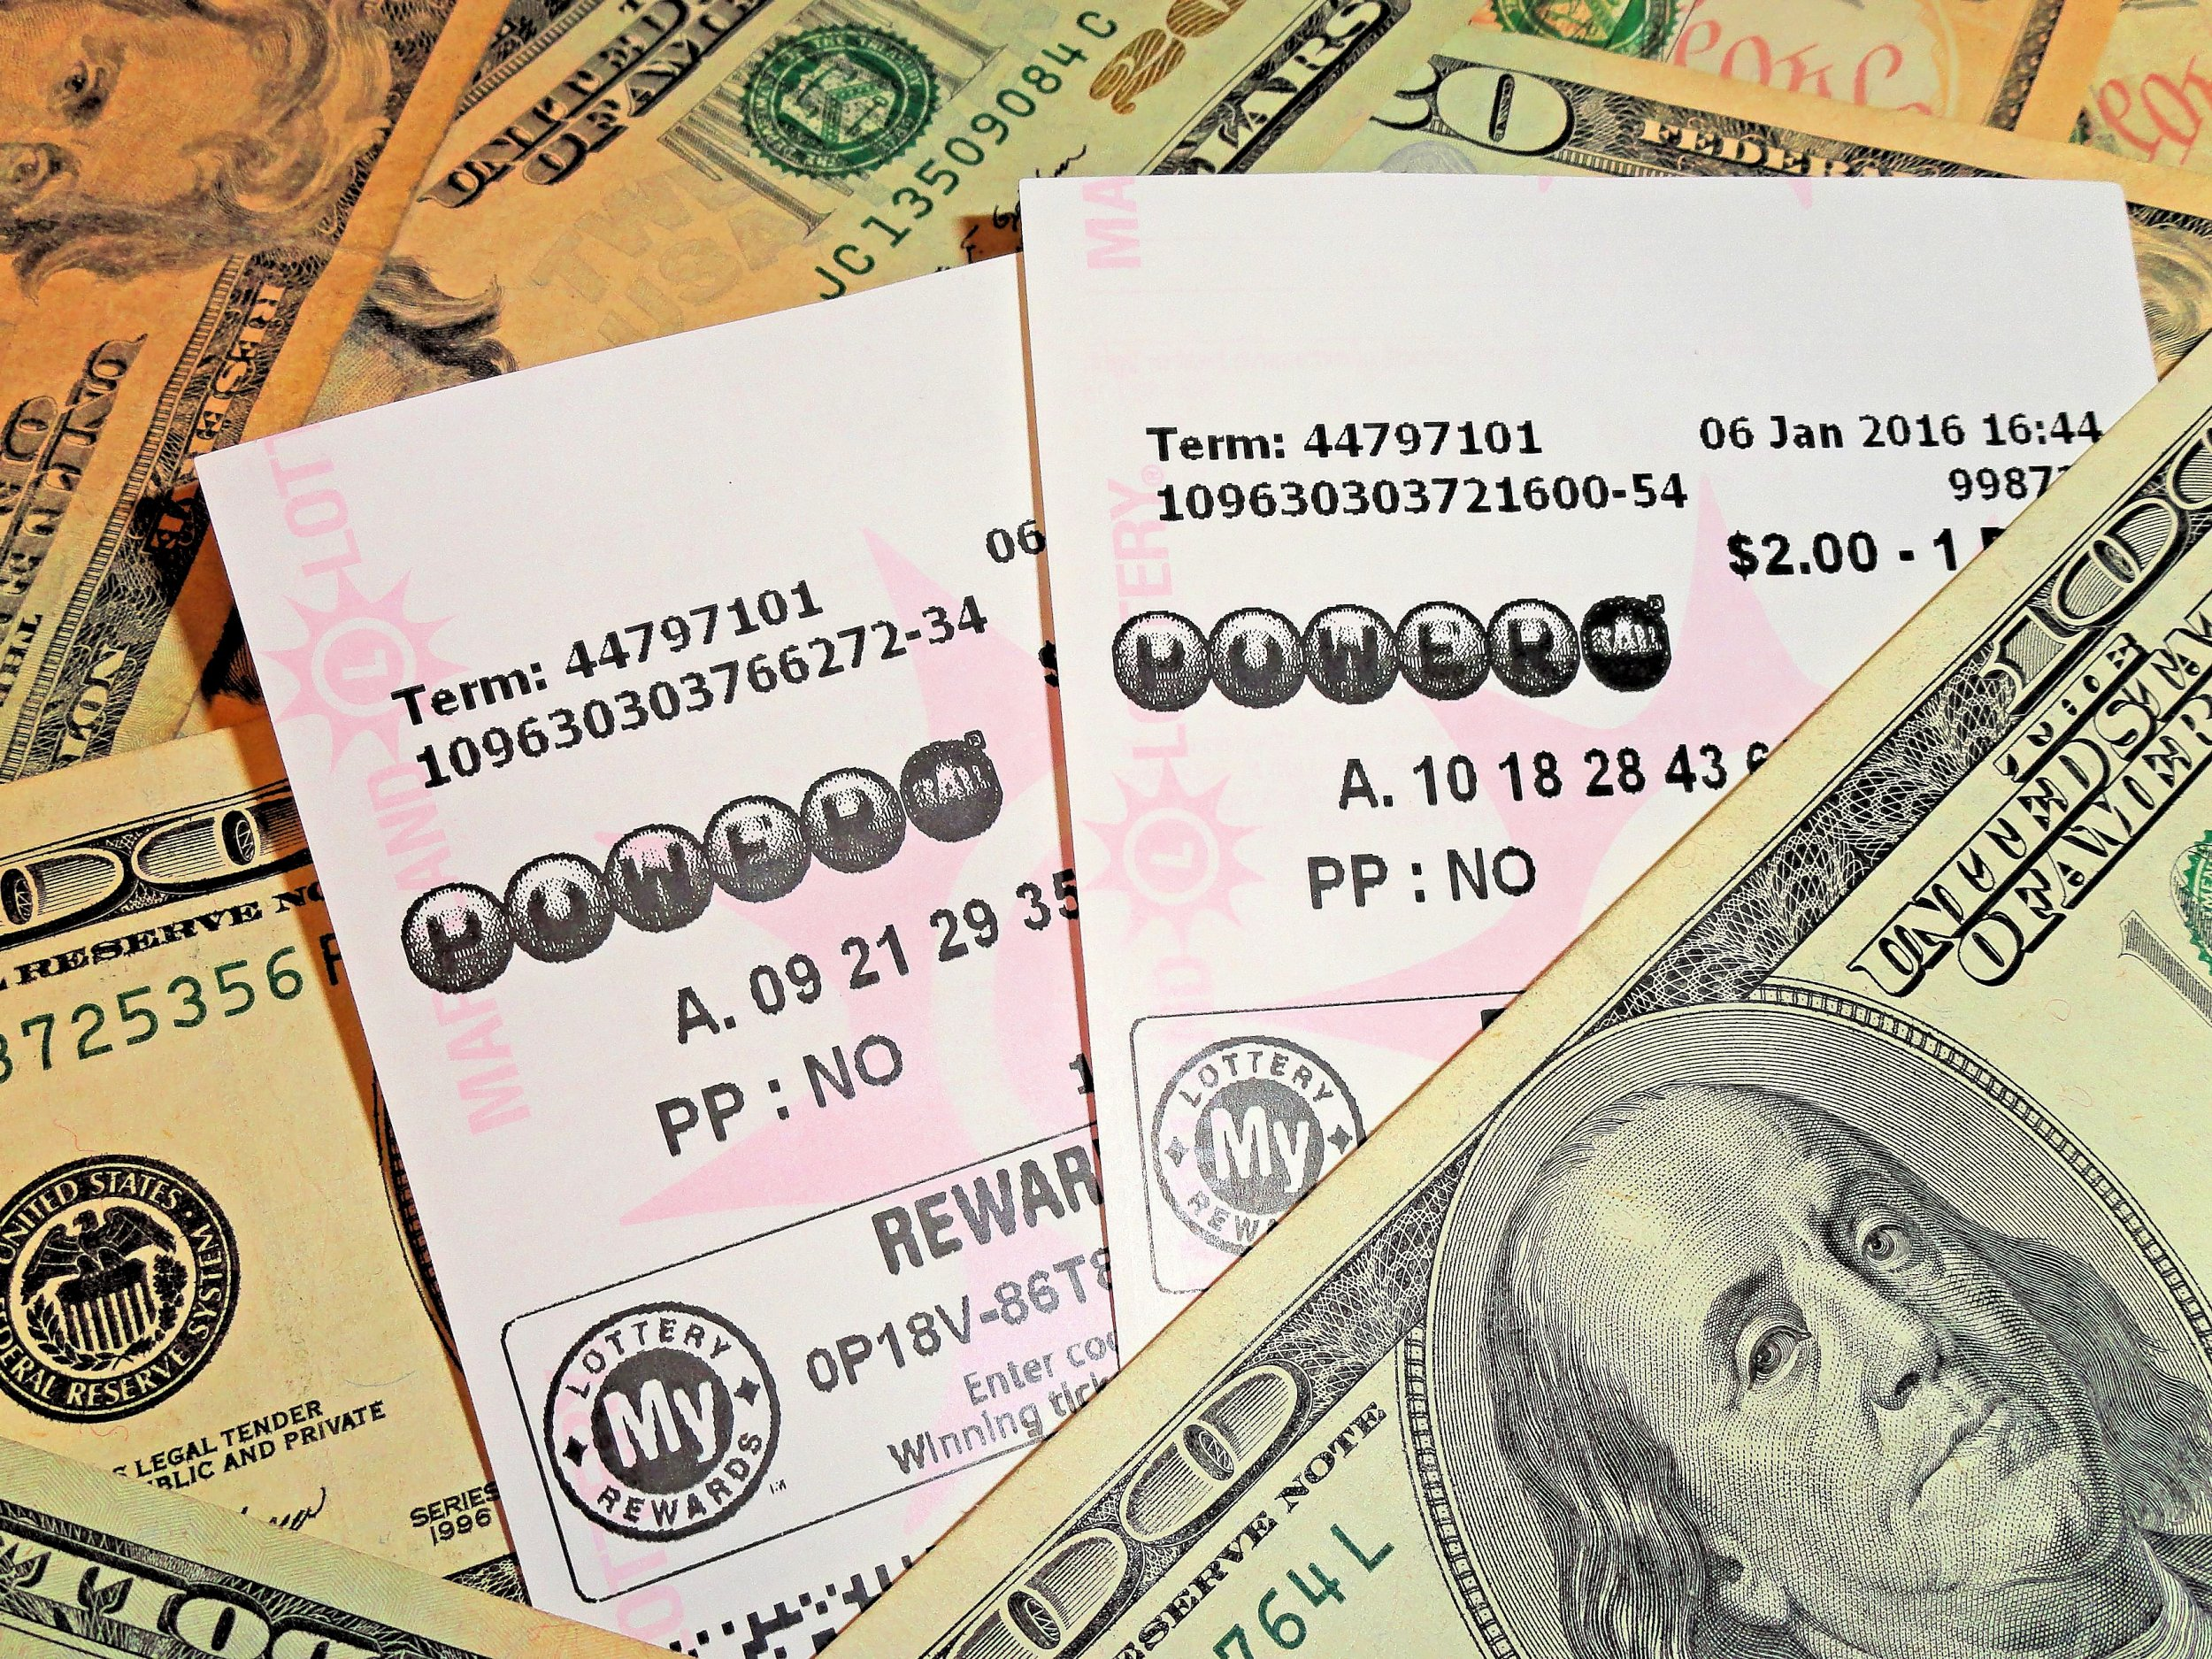 Powerball $350 Million Jackpot Winner Saturday: Here Are the